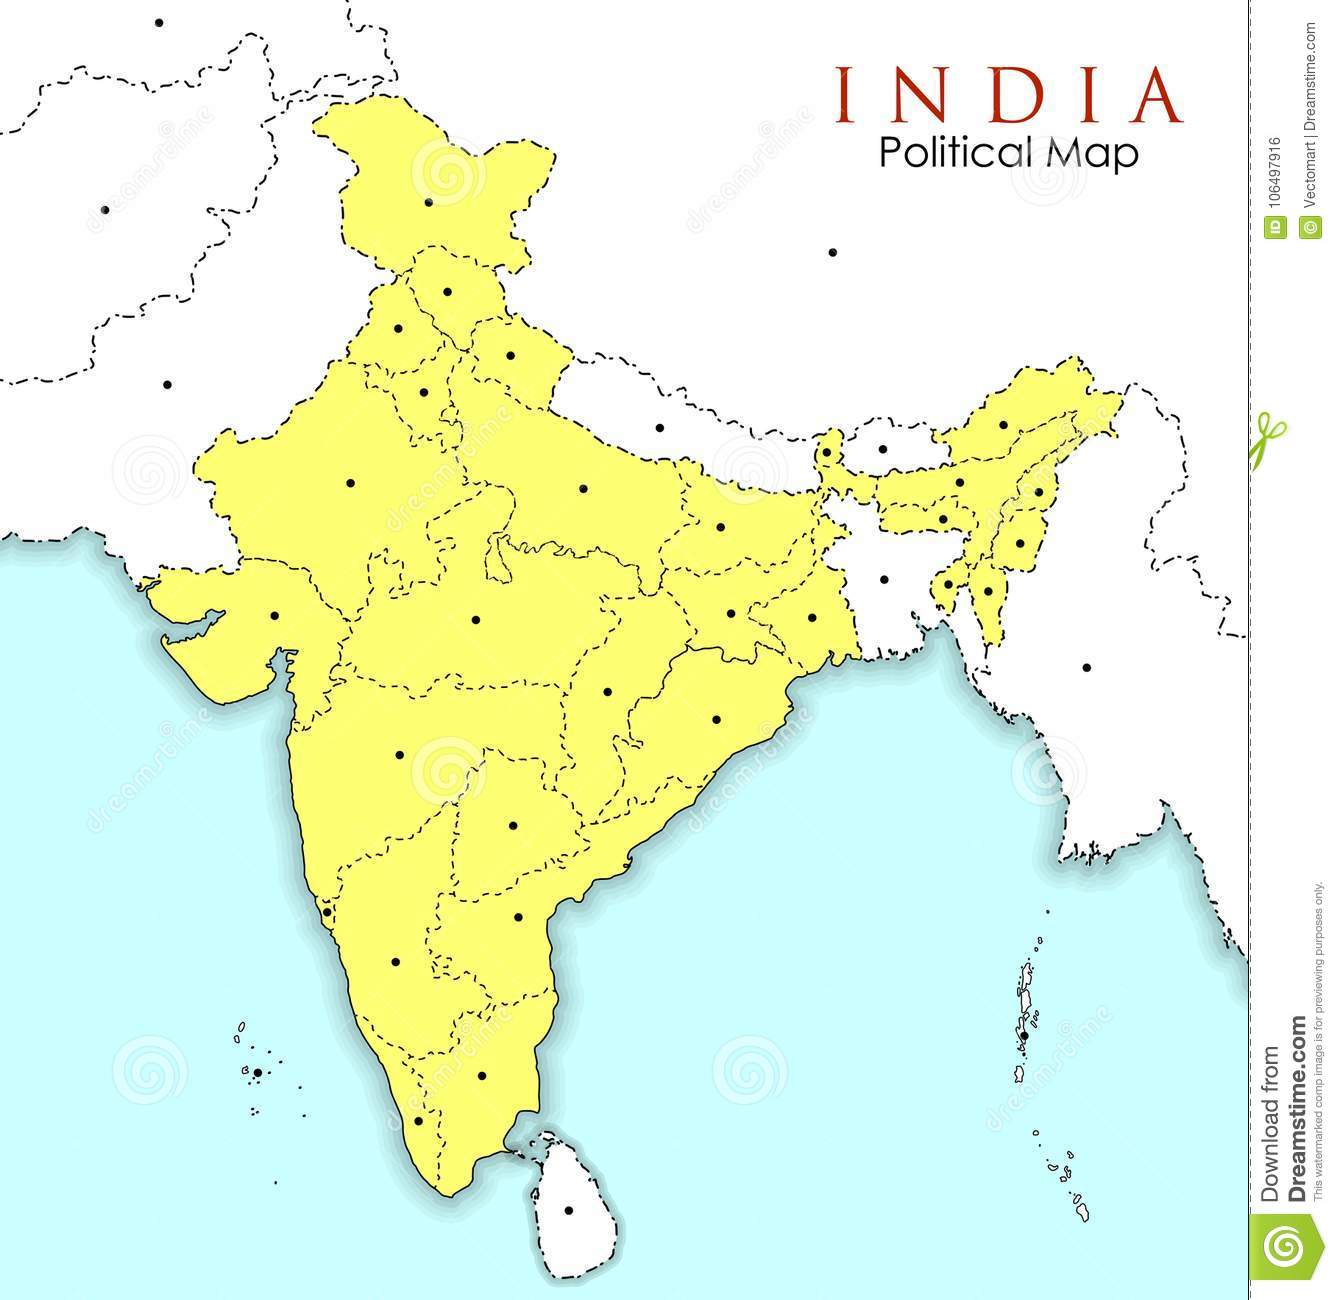 Detailed Map Of India, Asia With All States And Country ... on india bali map, india se, india map usa, india russia map, india on map, india yellow river map, india south asia, india continent map, india australia map, india heart map, india europe map, india region map, india population growth map, india in asia, mughal empire india map, tohoku japan earthquake 2011 map, india mongol empire map, india iran map, india and surrounding country map, africa map,